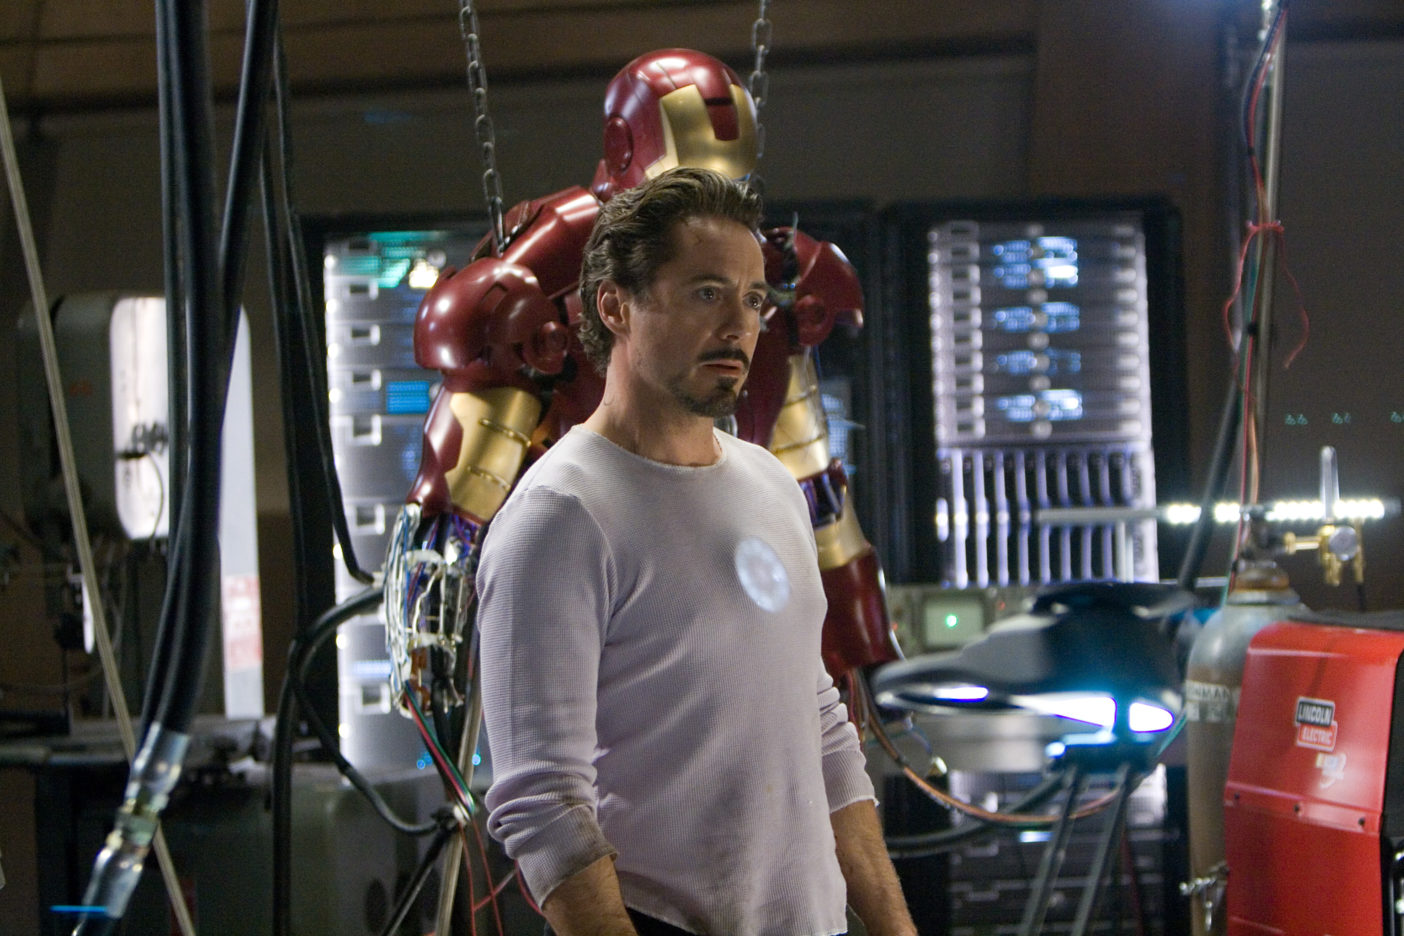 Iron Man Is Still The Most Important Marvel Film d6bb80424a8a714e4436fa55bb52c303 1404x936